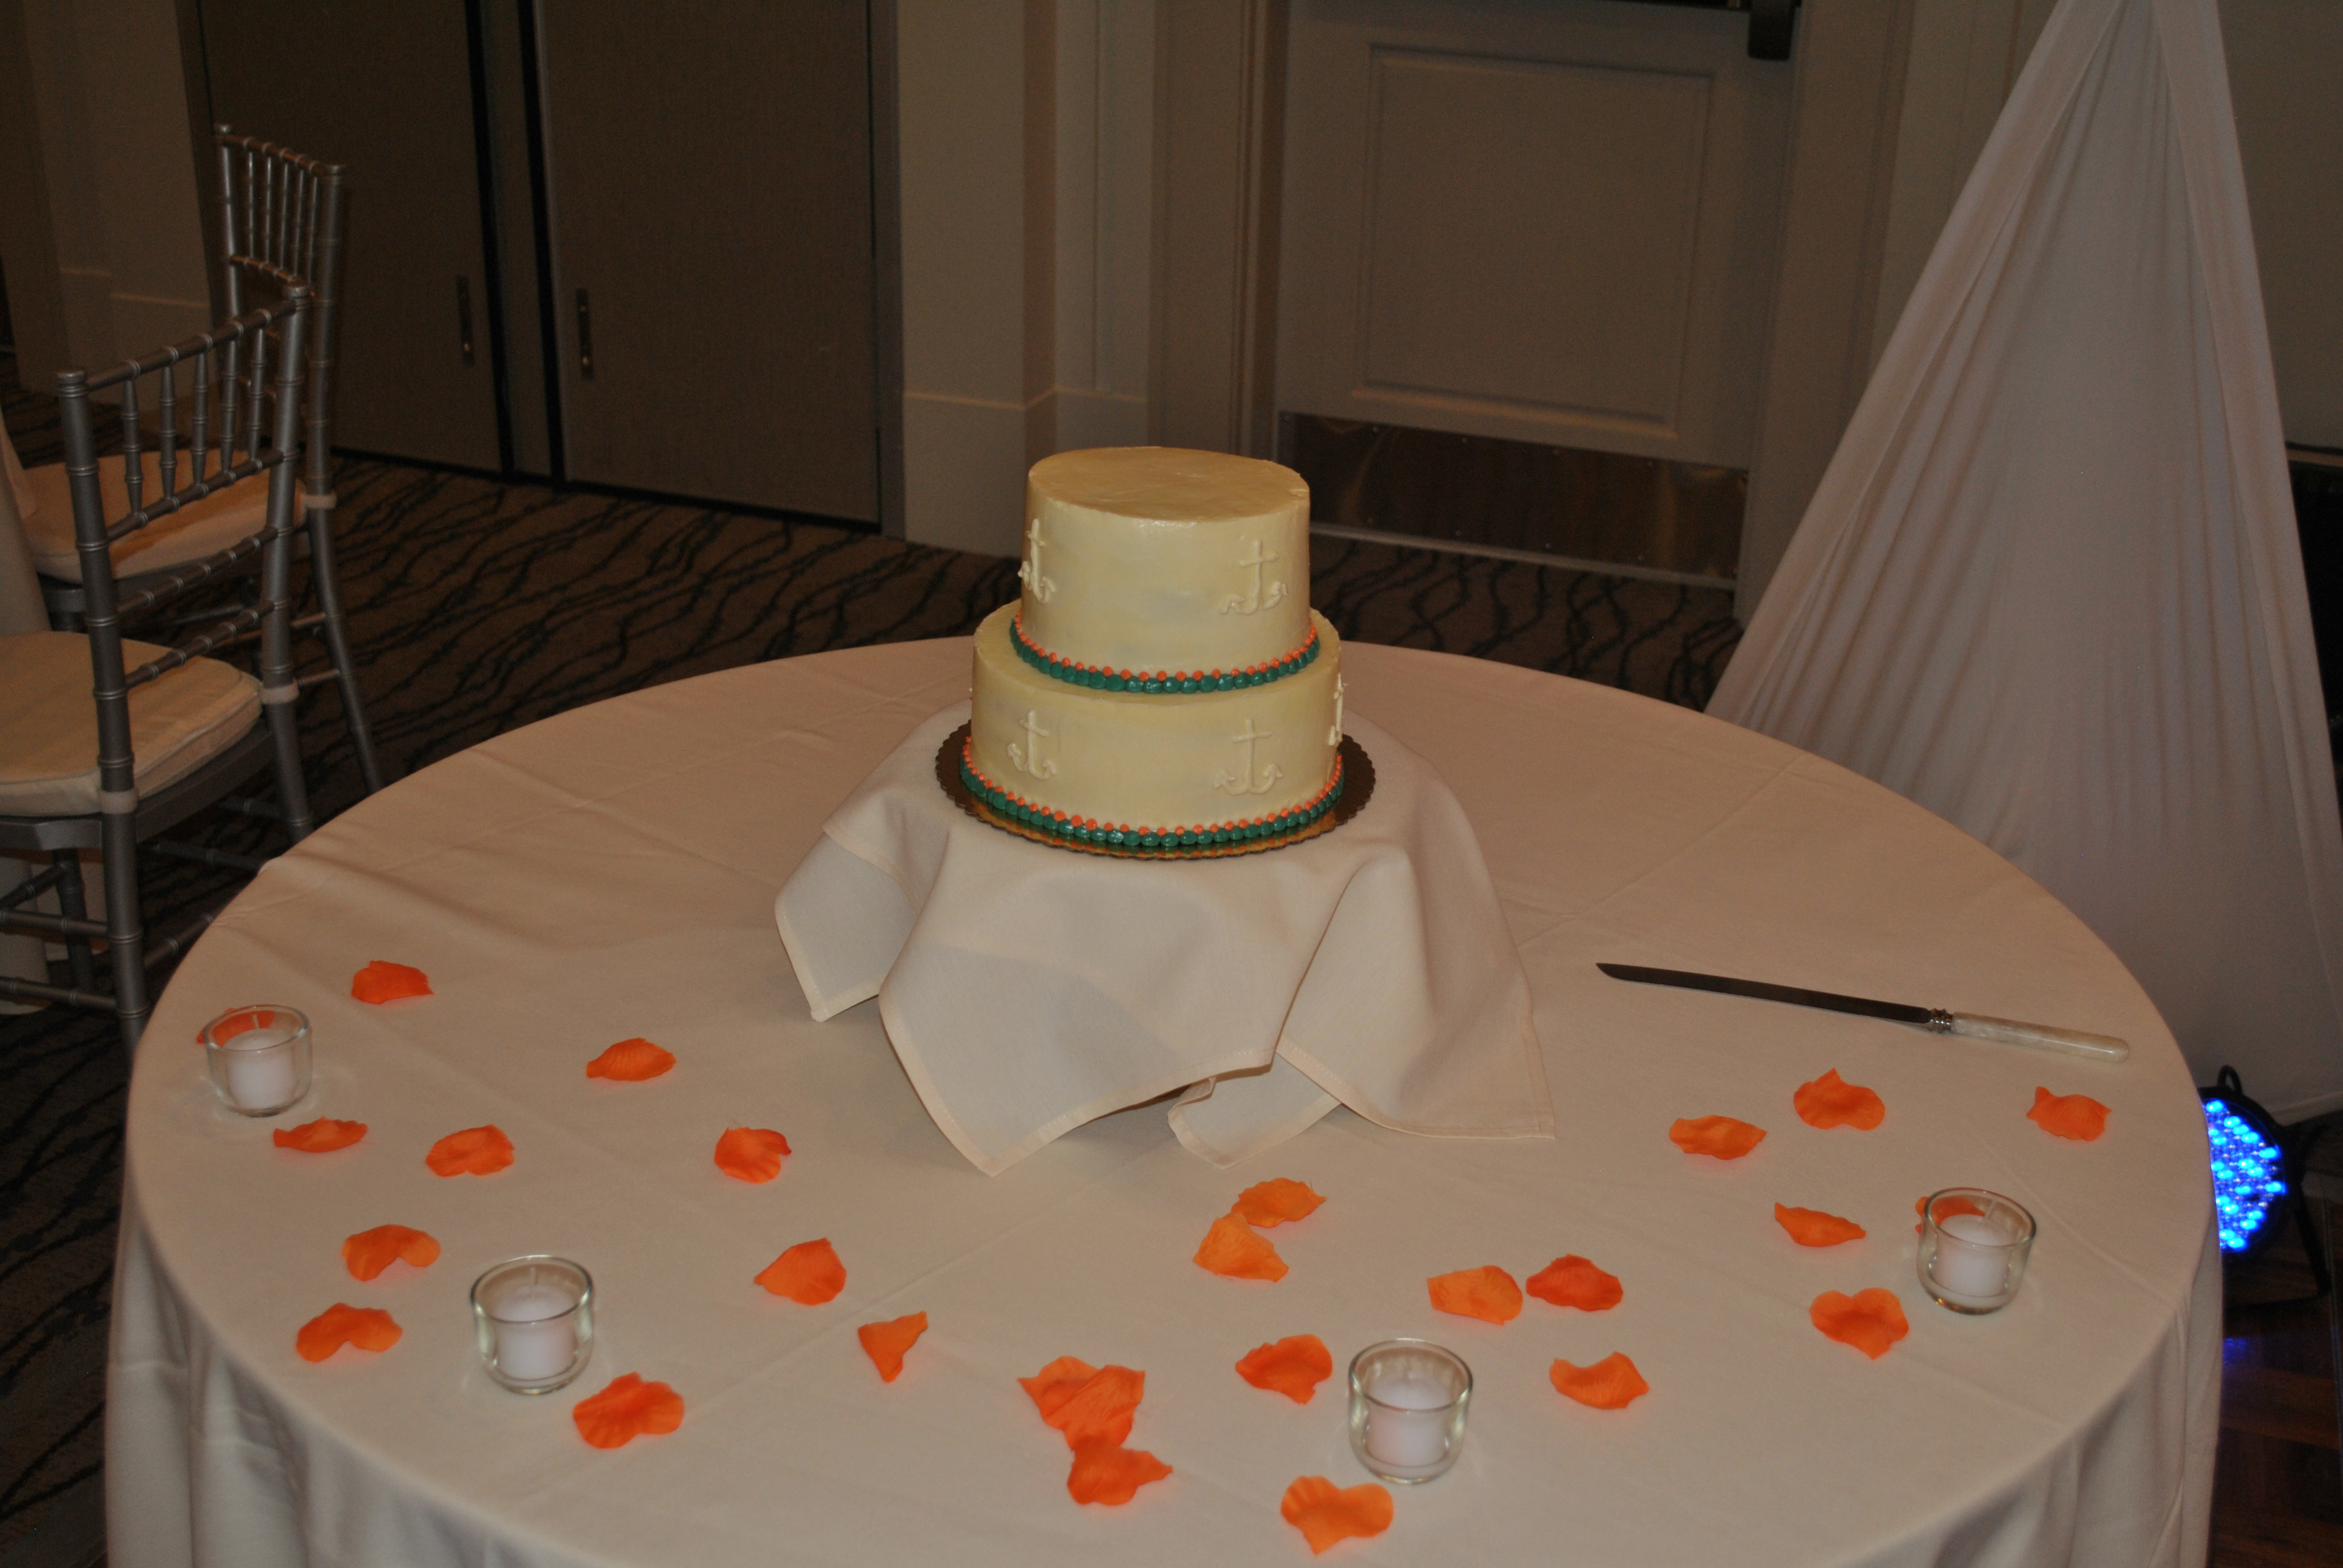 Audio Events Wedding Cake At Portsmouth Harbor Conference Center